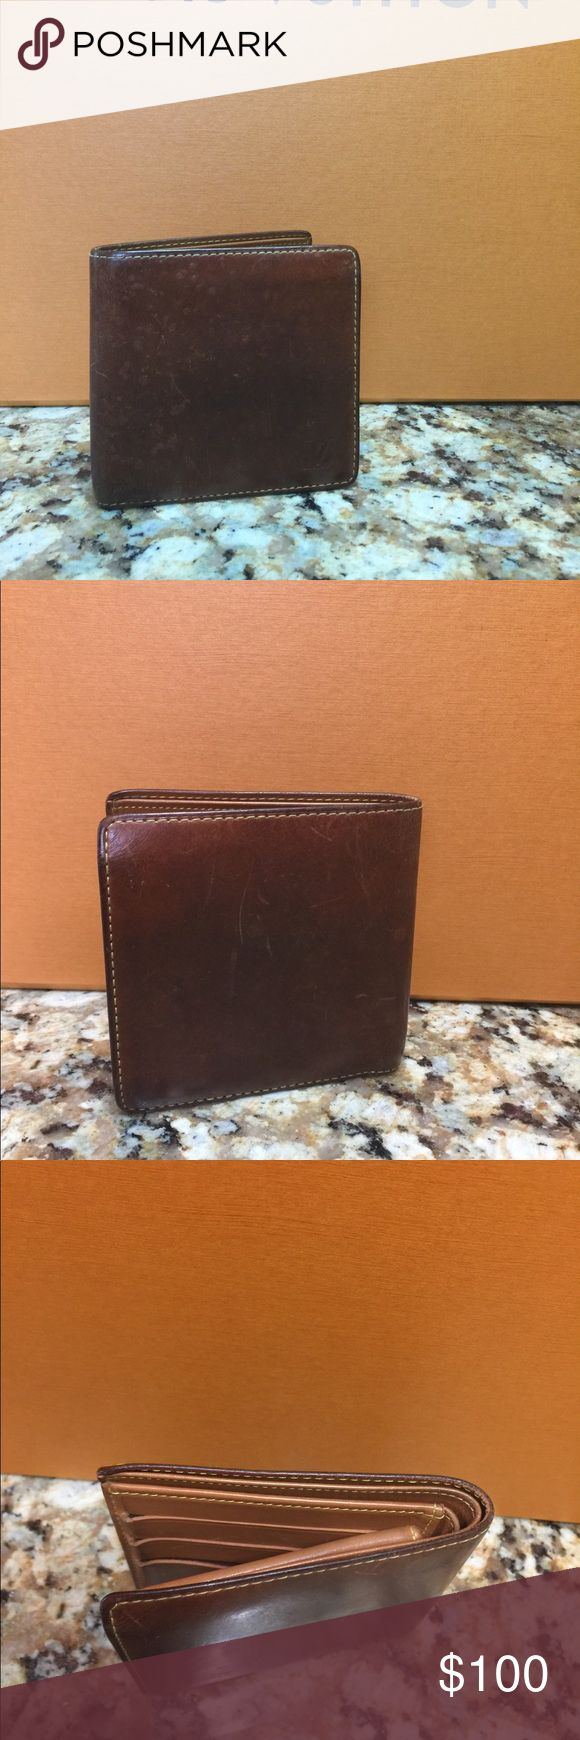 LOUIS VUITTON Men's Wallet See all pictures. The inside is in great condition some transfer dirt but no cracks or peeling or smells. The outside has scratch marks and little bubbles on the front. Could use a sand down and paint job Louis Vuitton Accessories Money Clips